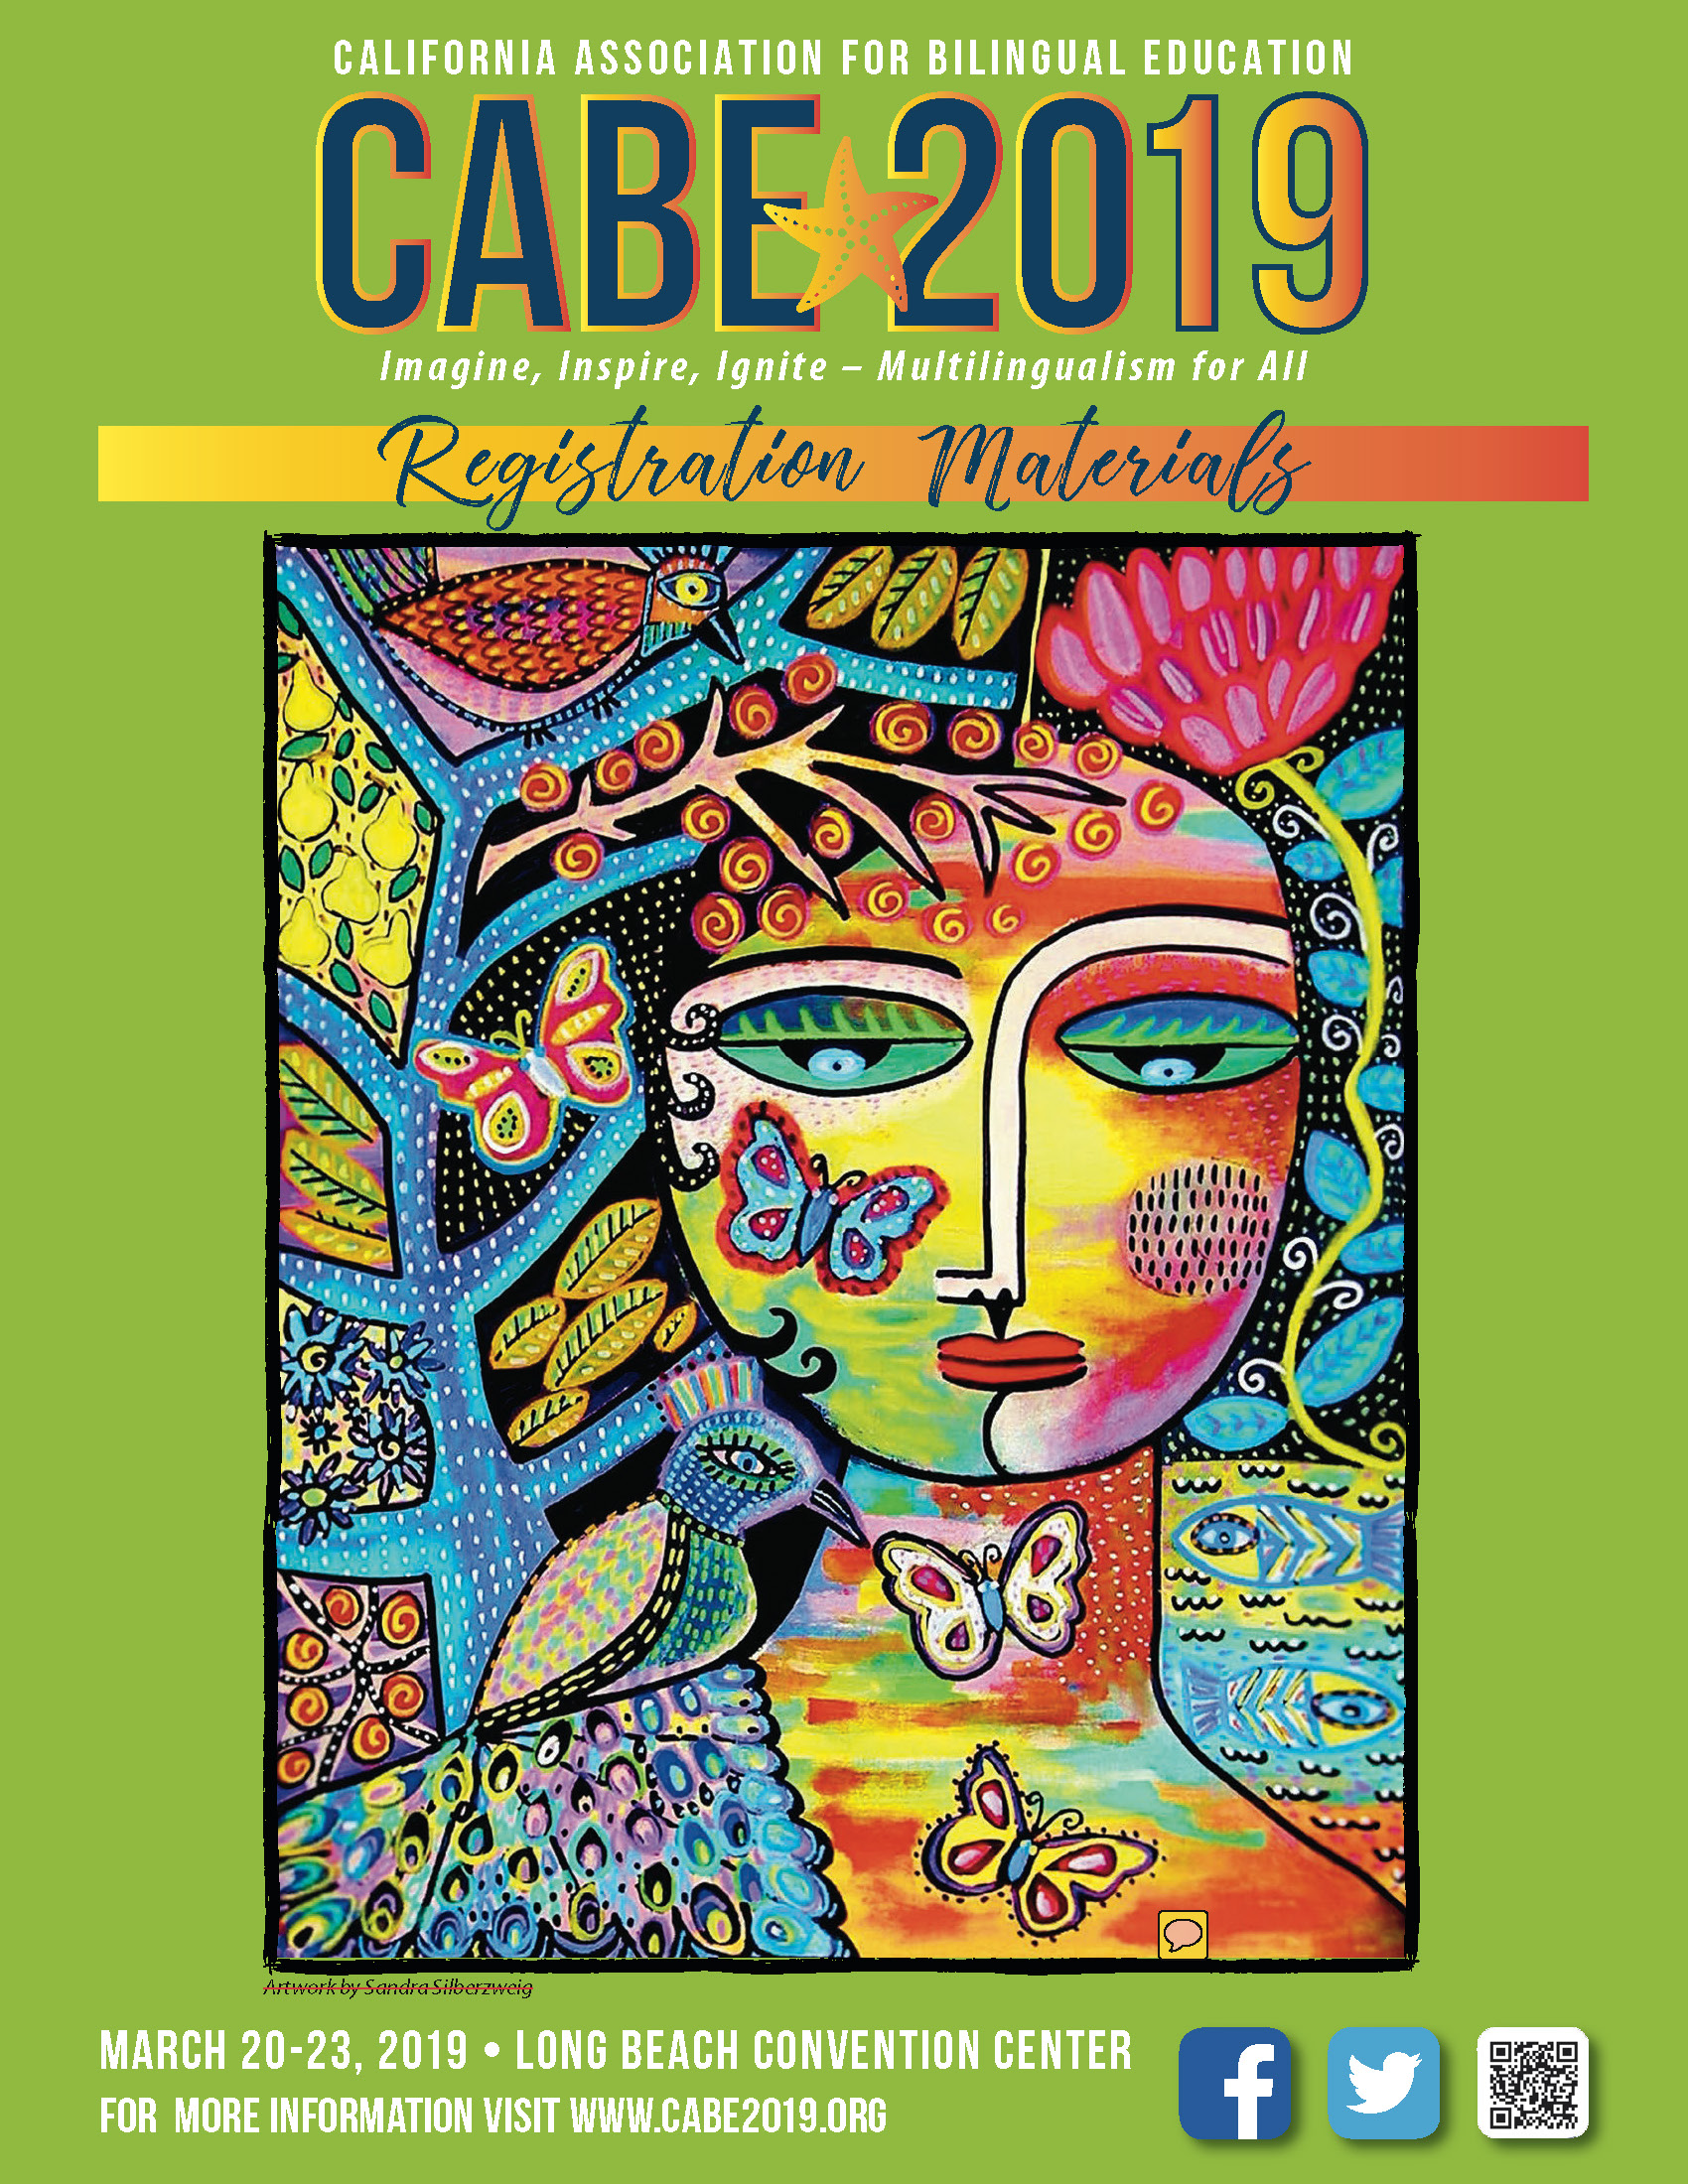 Download Registration Brochure for CABE 2019!